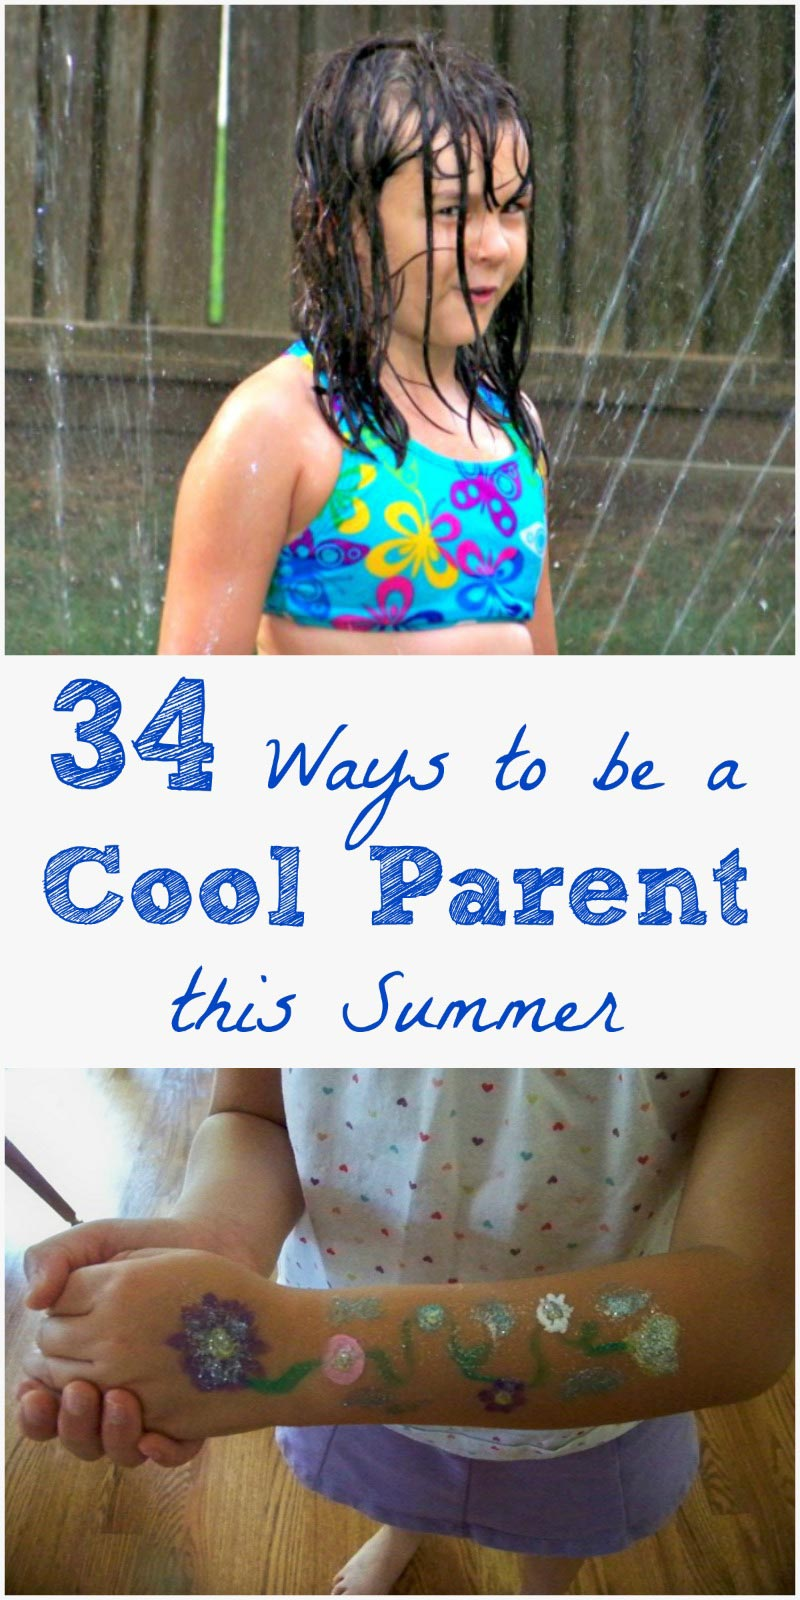 Fun things to do with the kids this summer!  Love these simple, retro ideas!